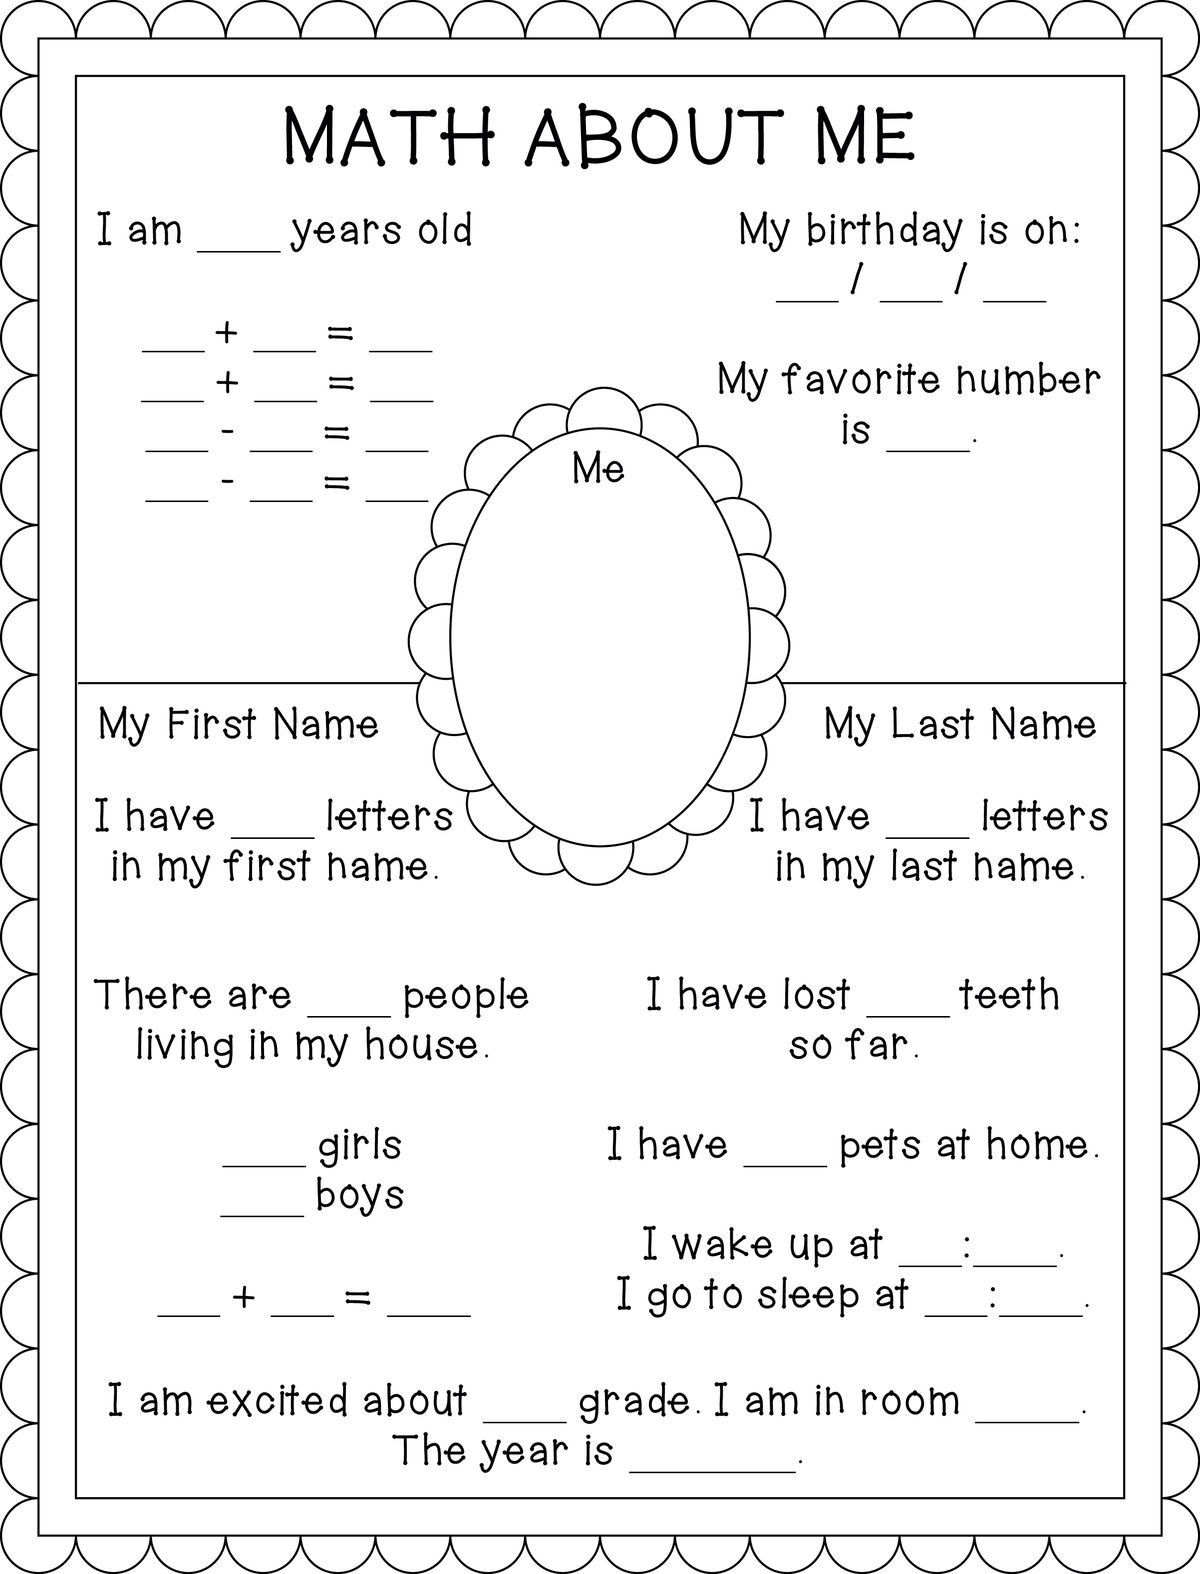 Pin By Serene Tancredi On Preschool All About Me